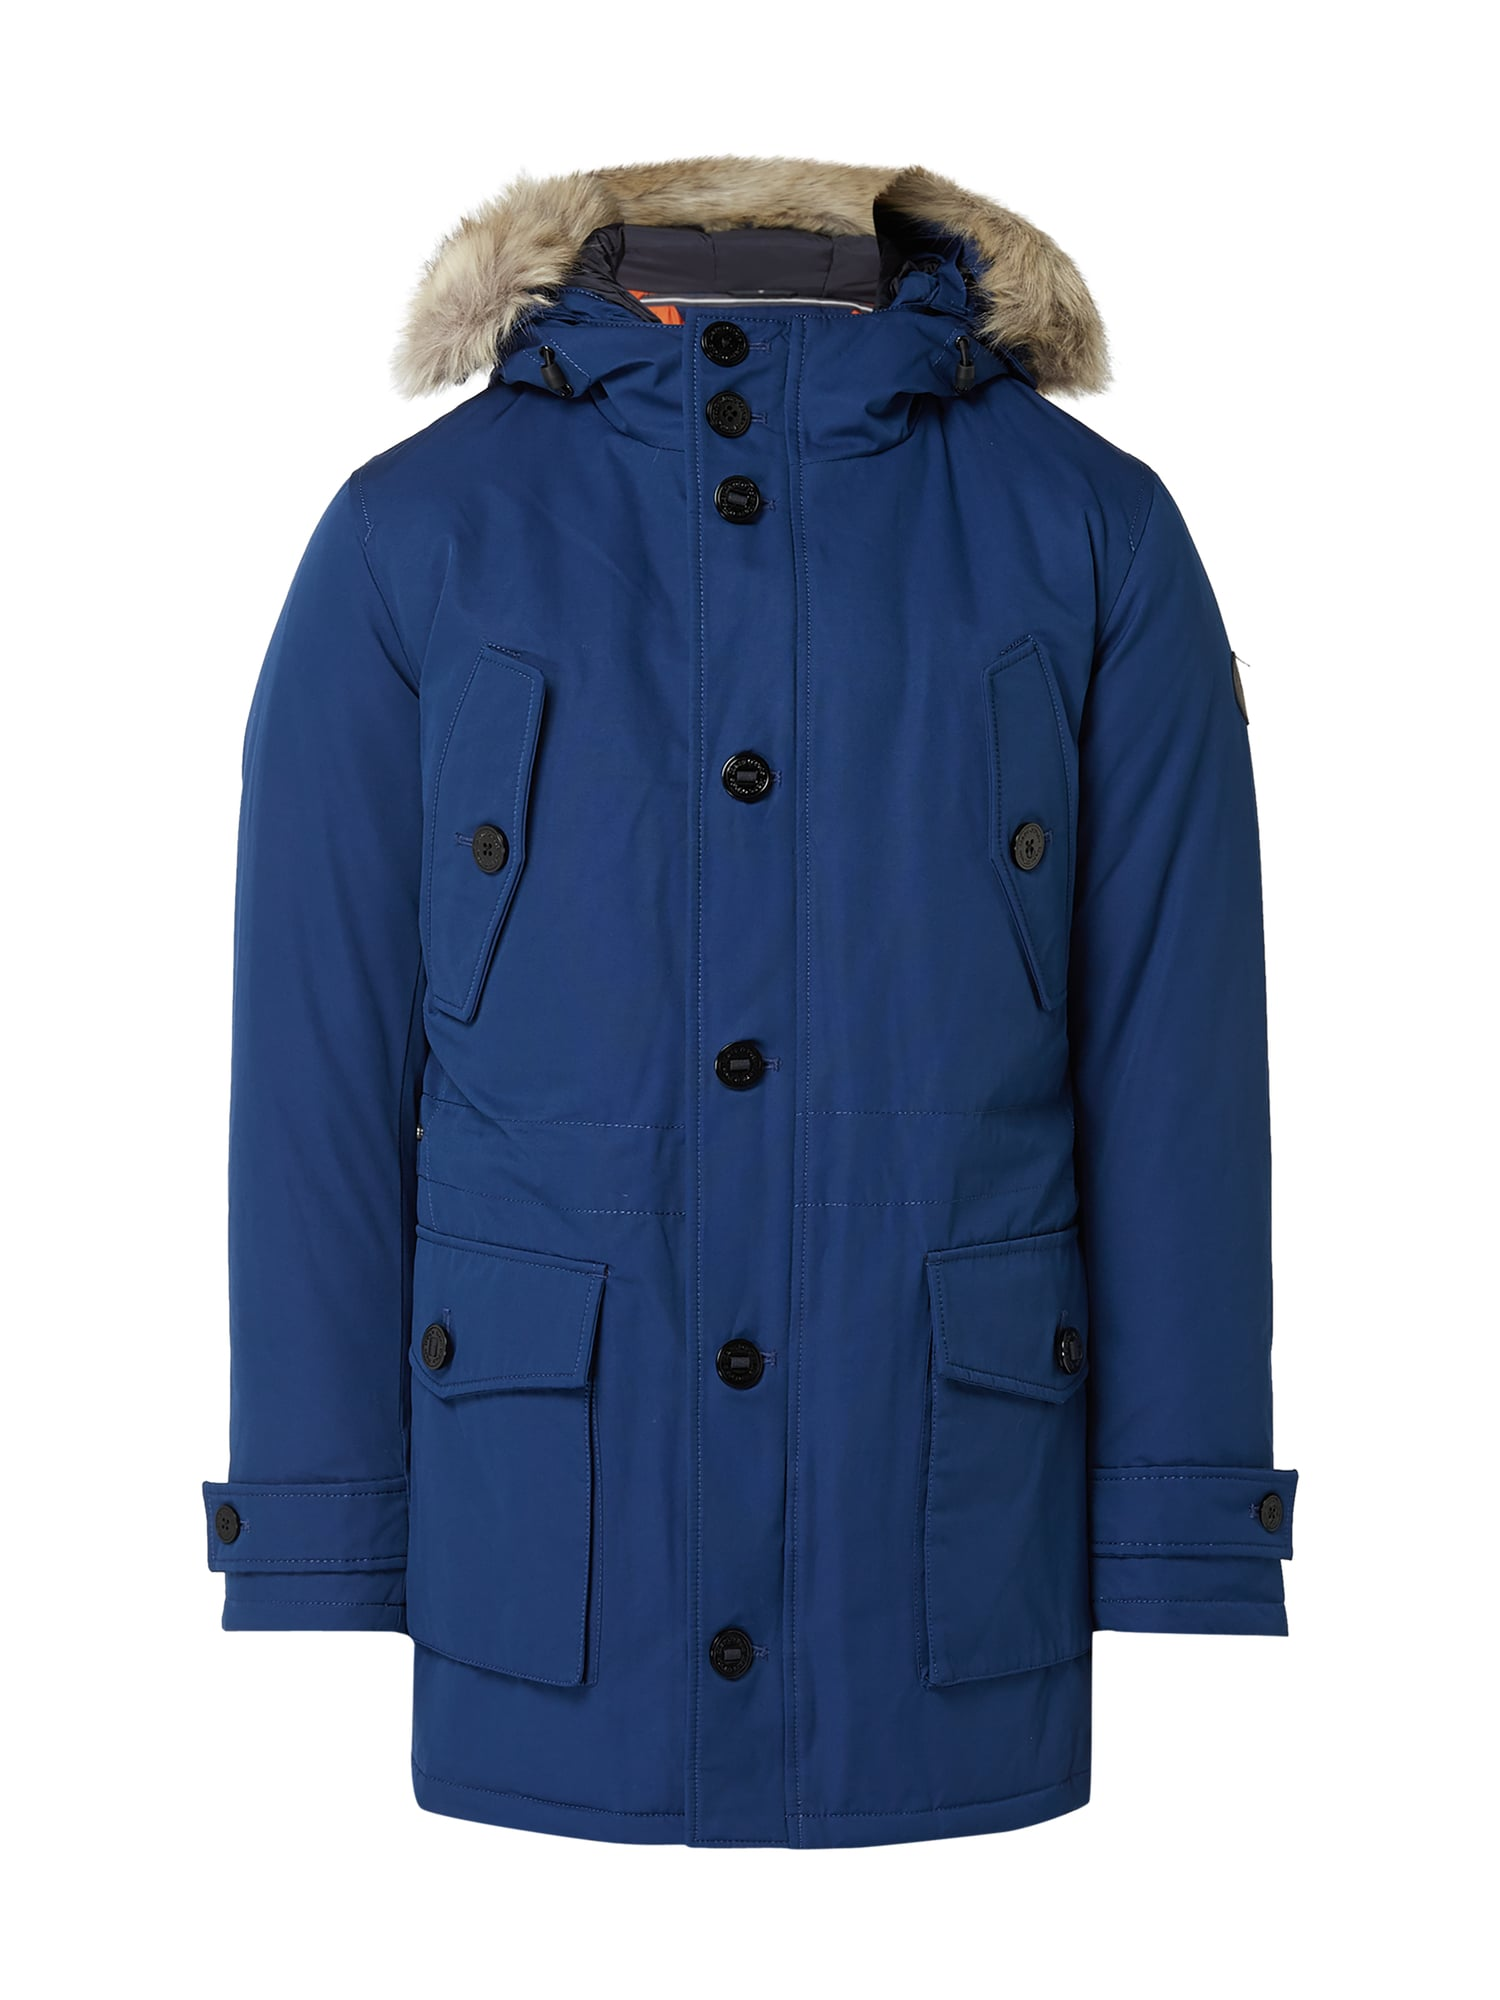 marc o polo parka mit daunen federn f llung in blau t rkis online kaufen 9846702 p c online. Black Bedroom Furniture Sets. Home Design Ideas